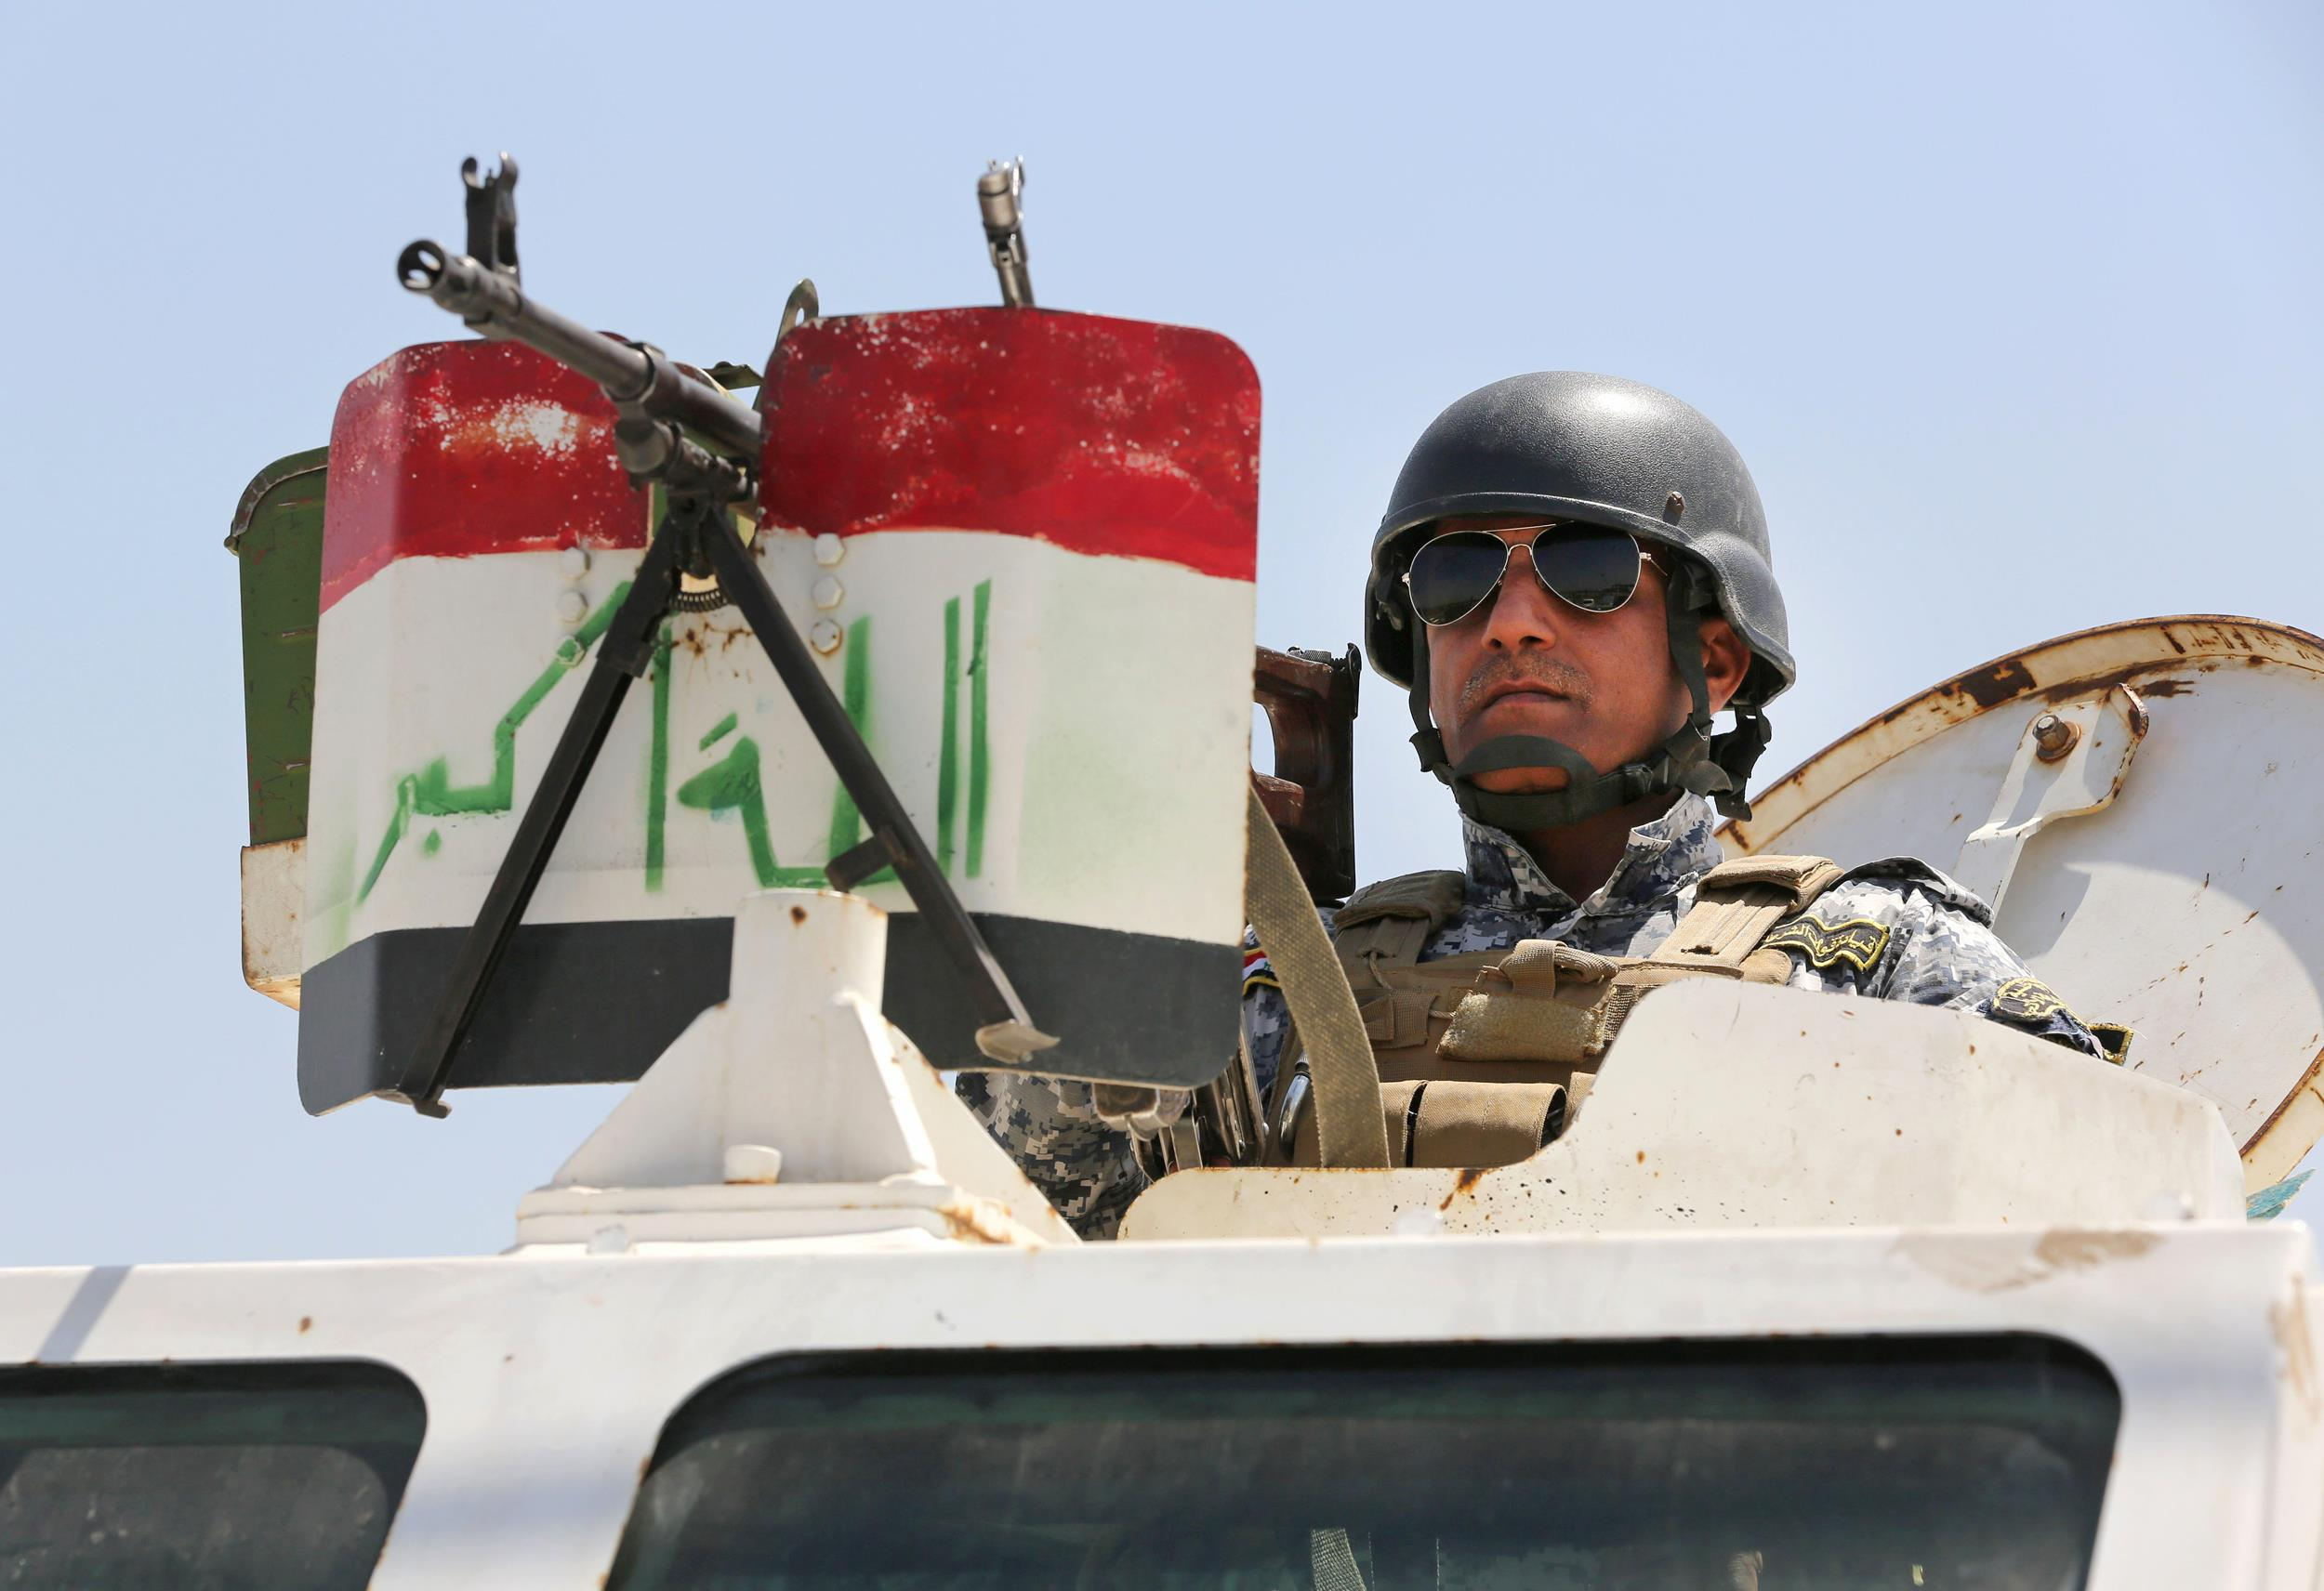 Image: An Iraqi federal policeman stands on top an armored vehicle at a checkpoint in Baghdad on Sunday.